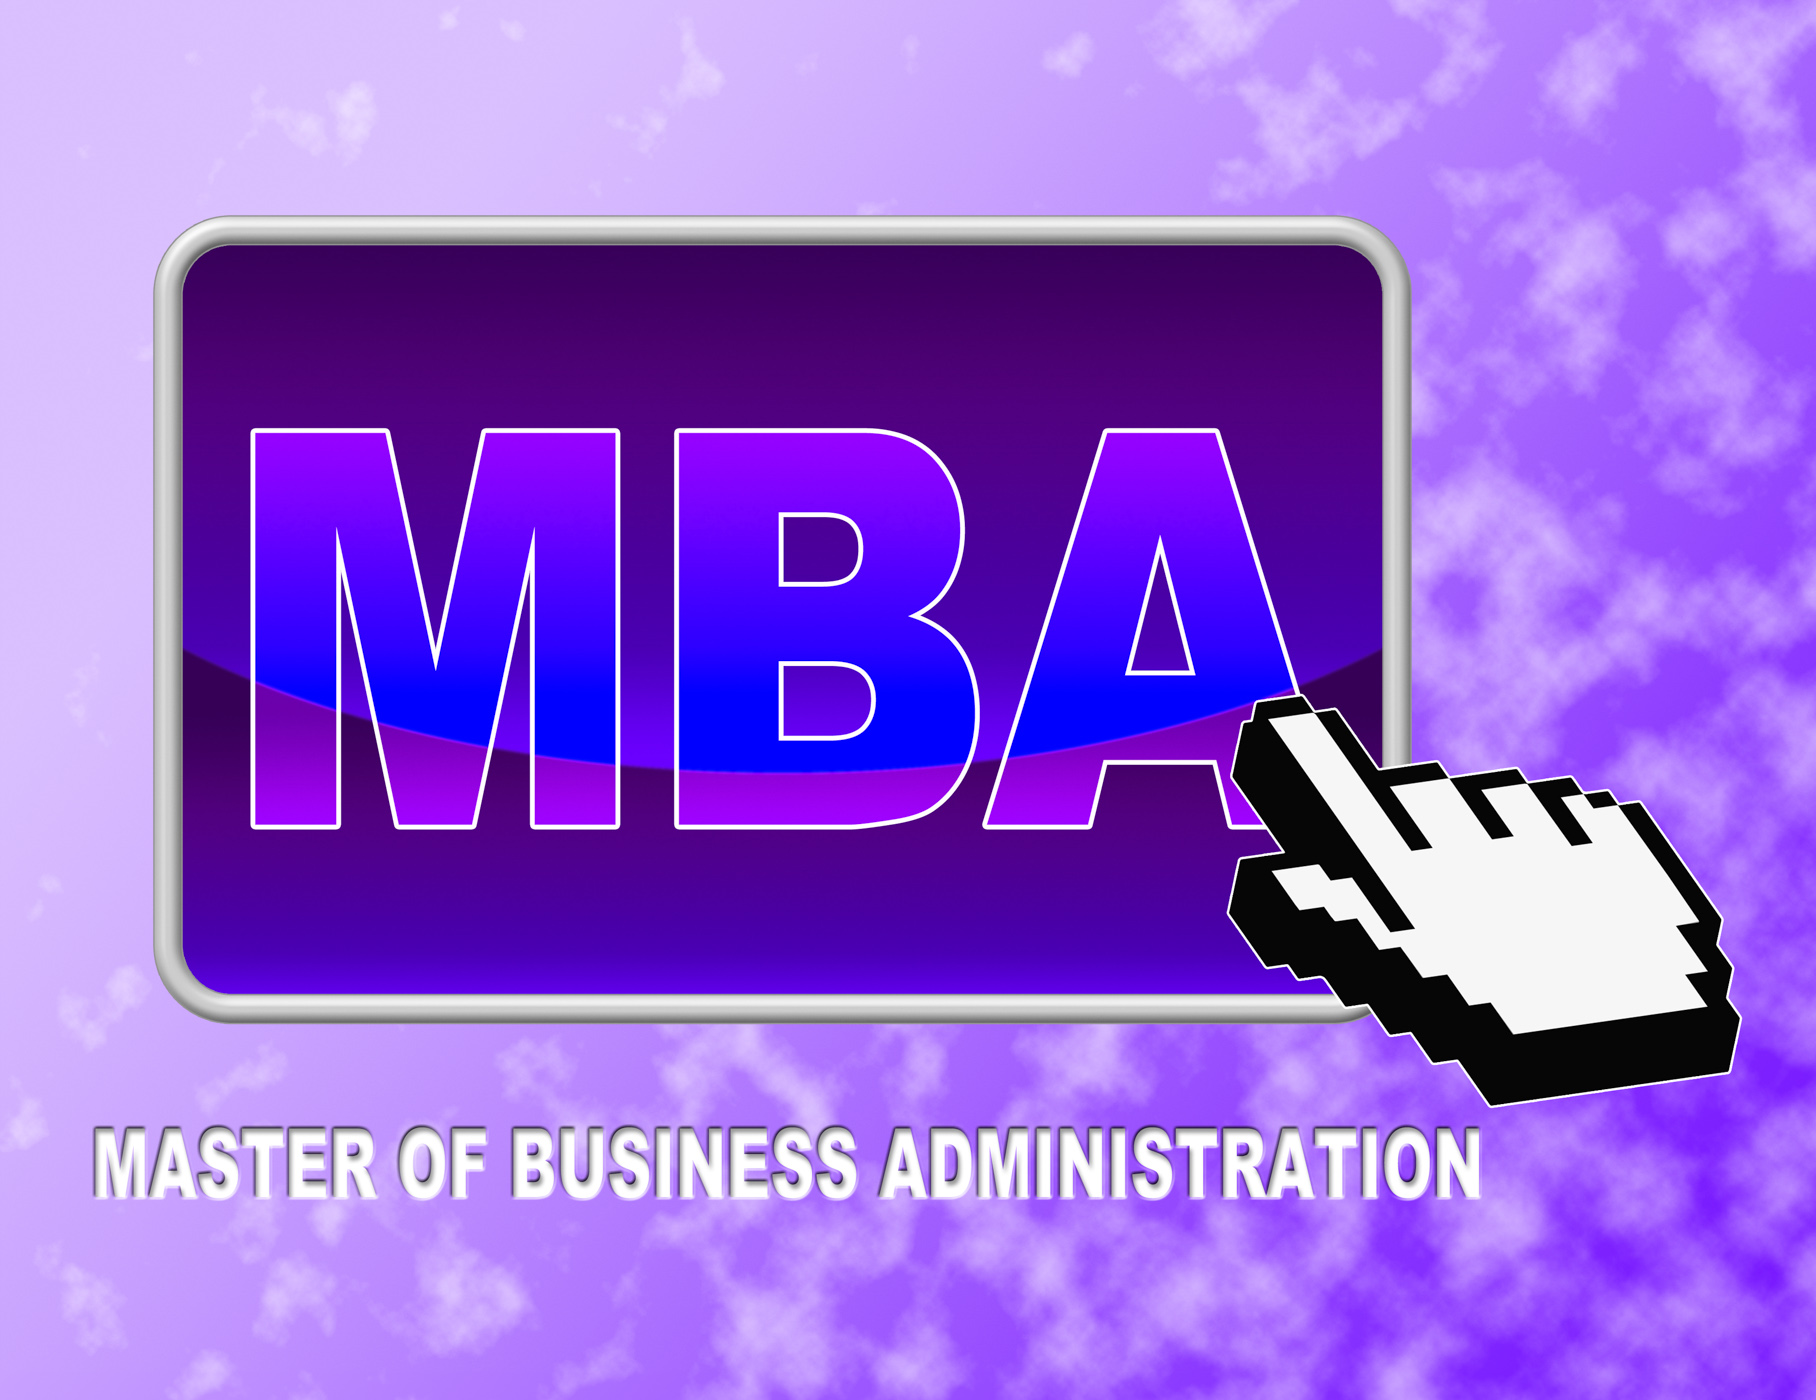 Mba button means master of business administration photo